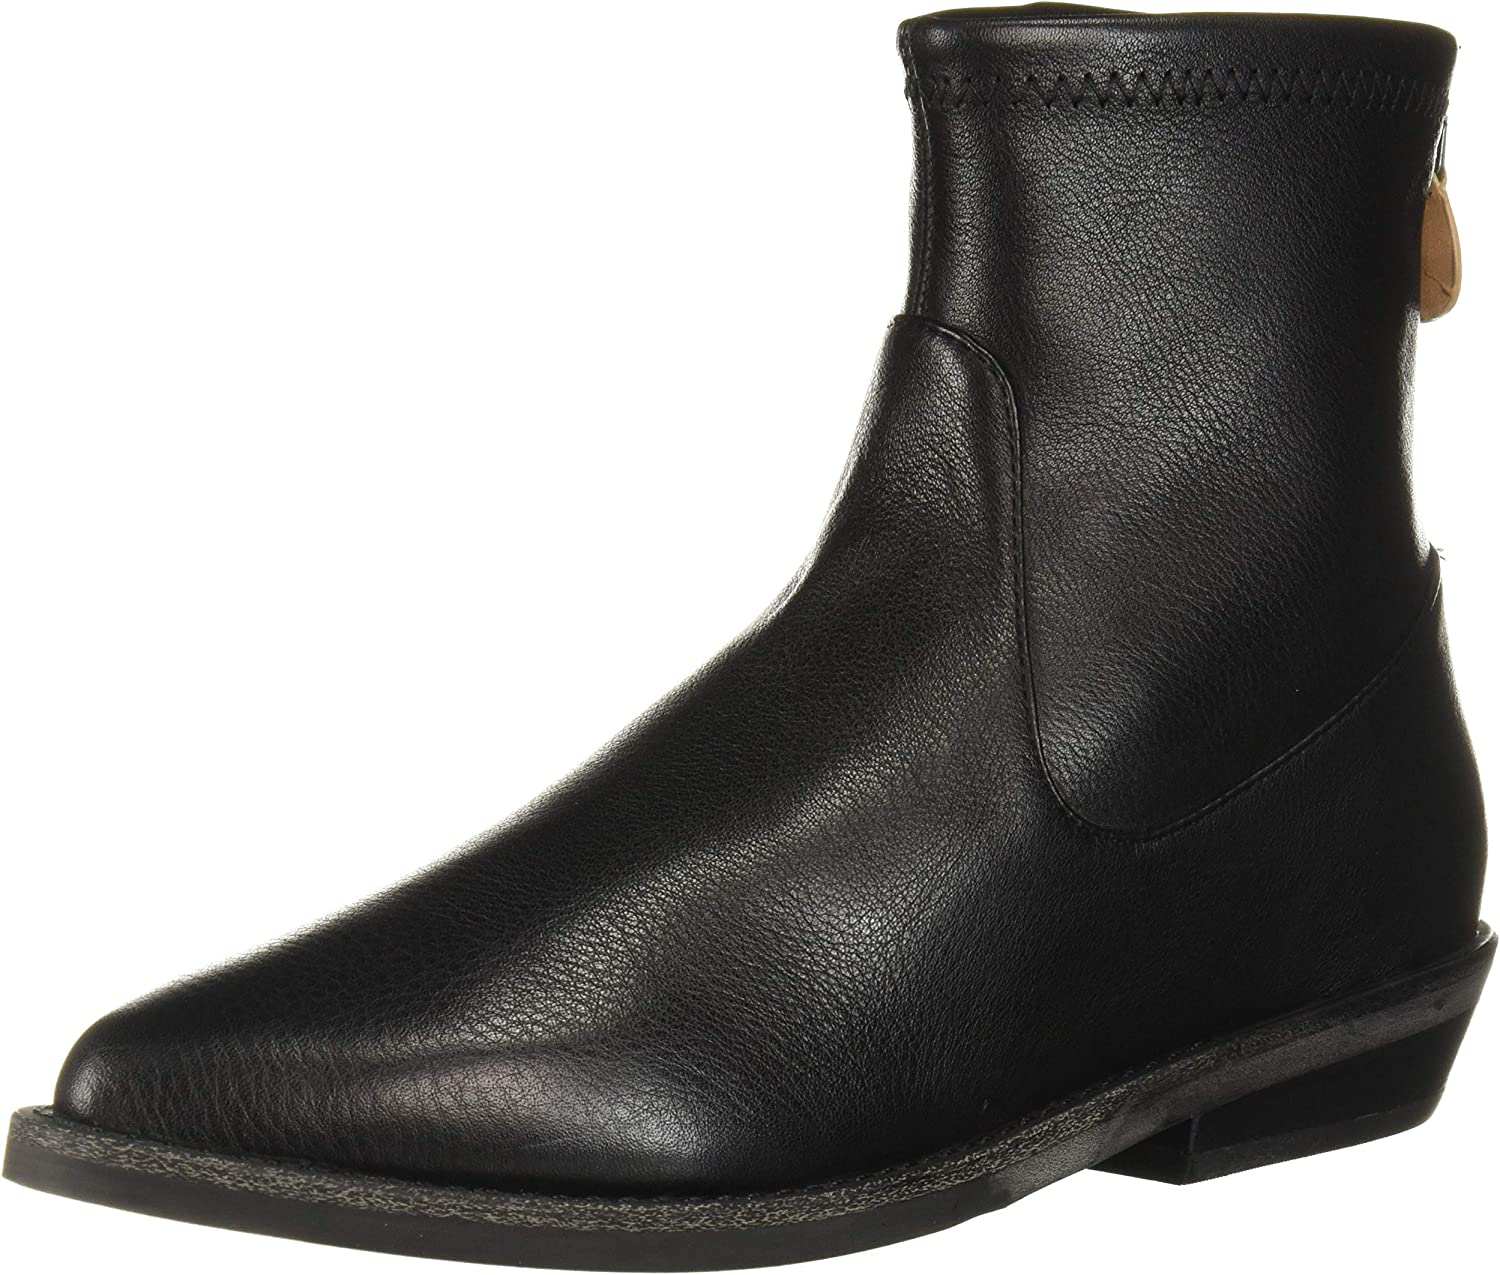 Gentle Souls by Kenneth Cole Women's Neptune Soft Bootie Ankle Boot